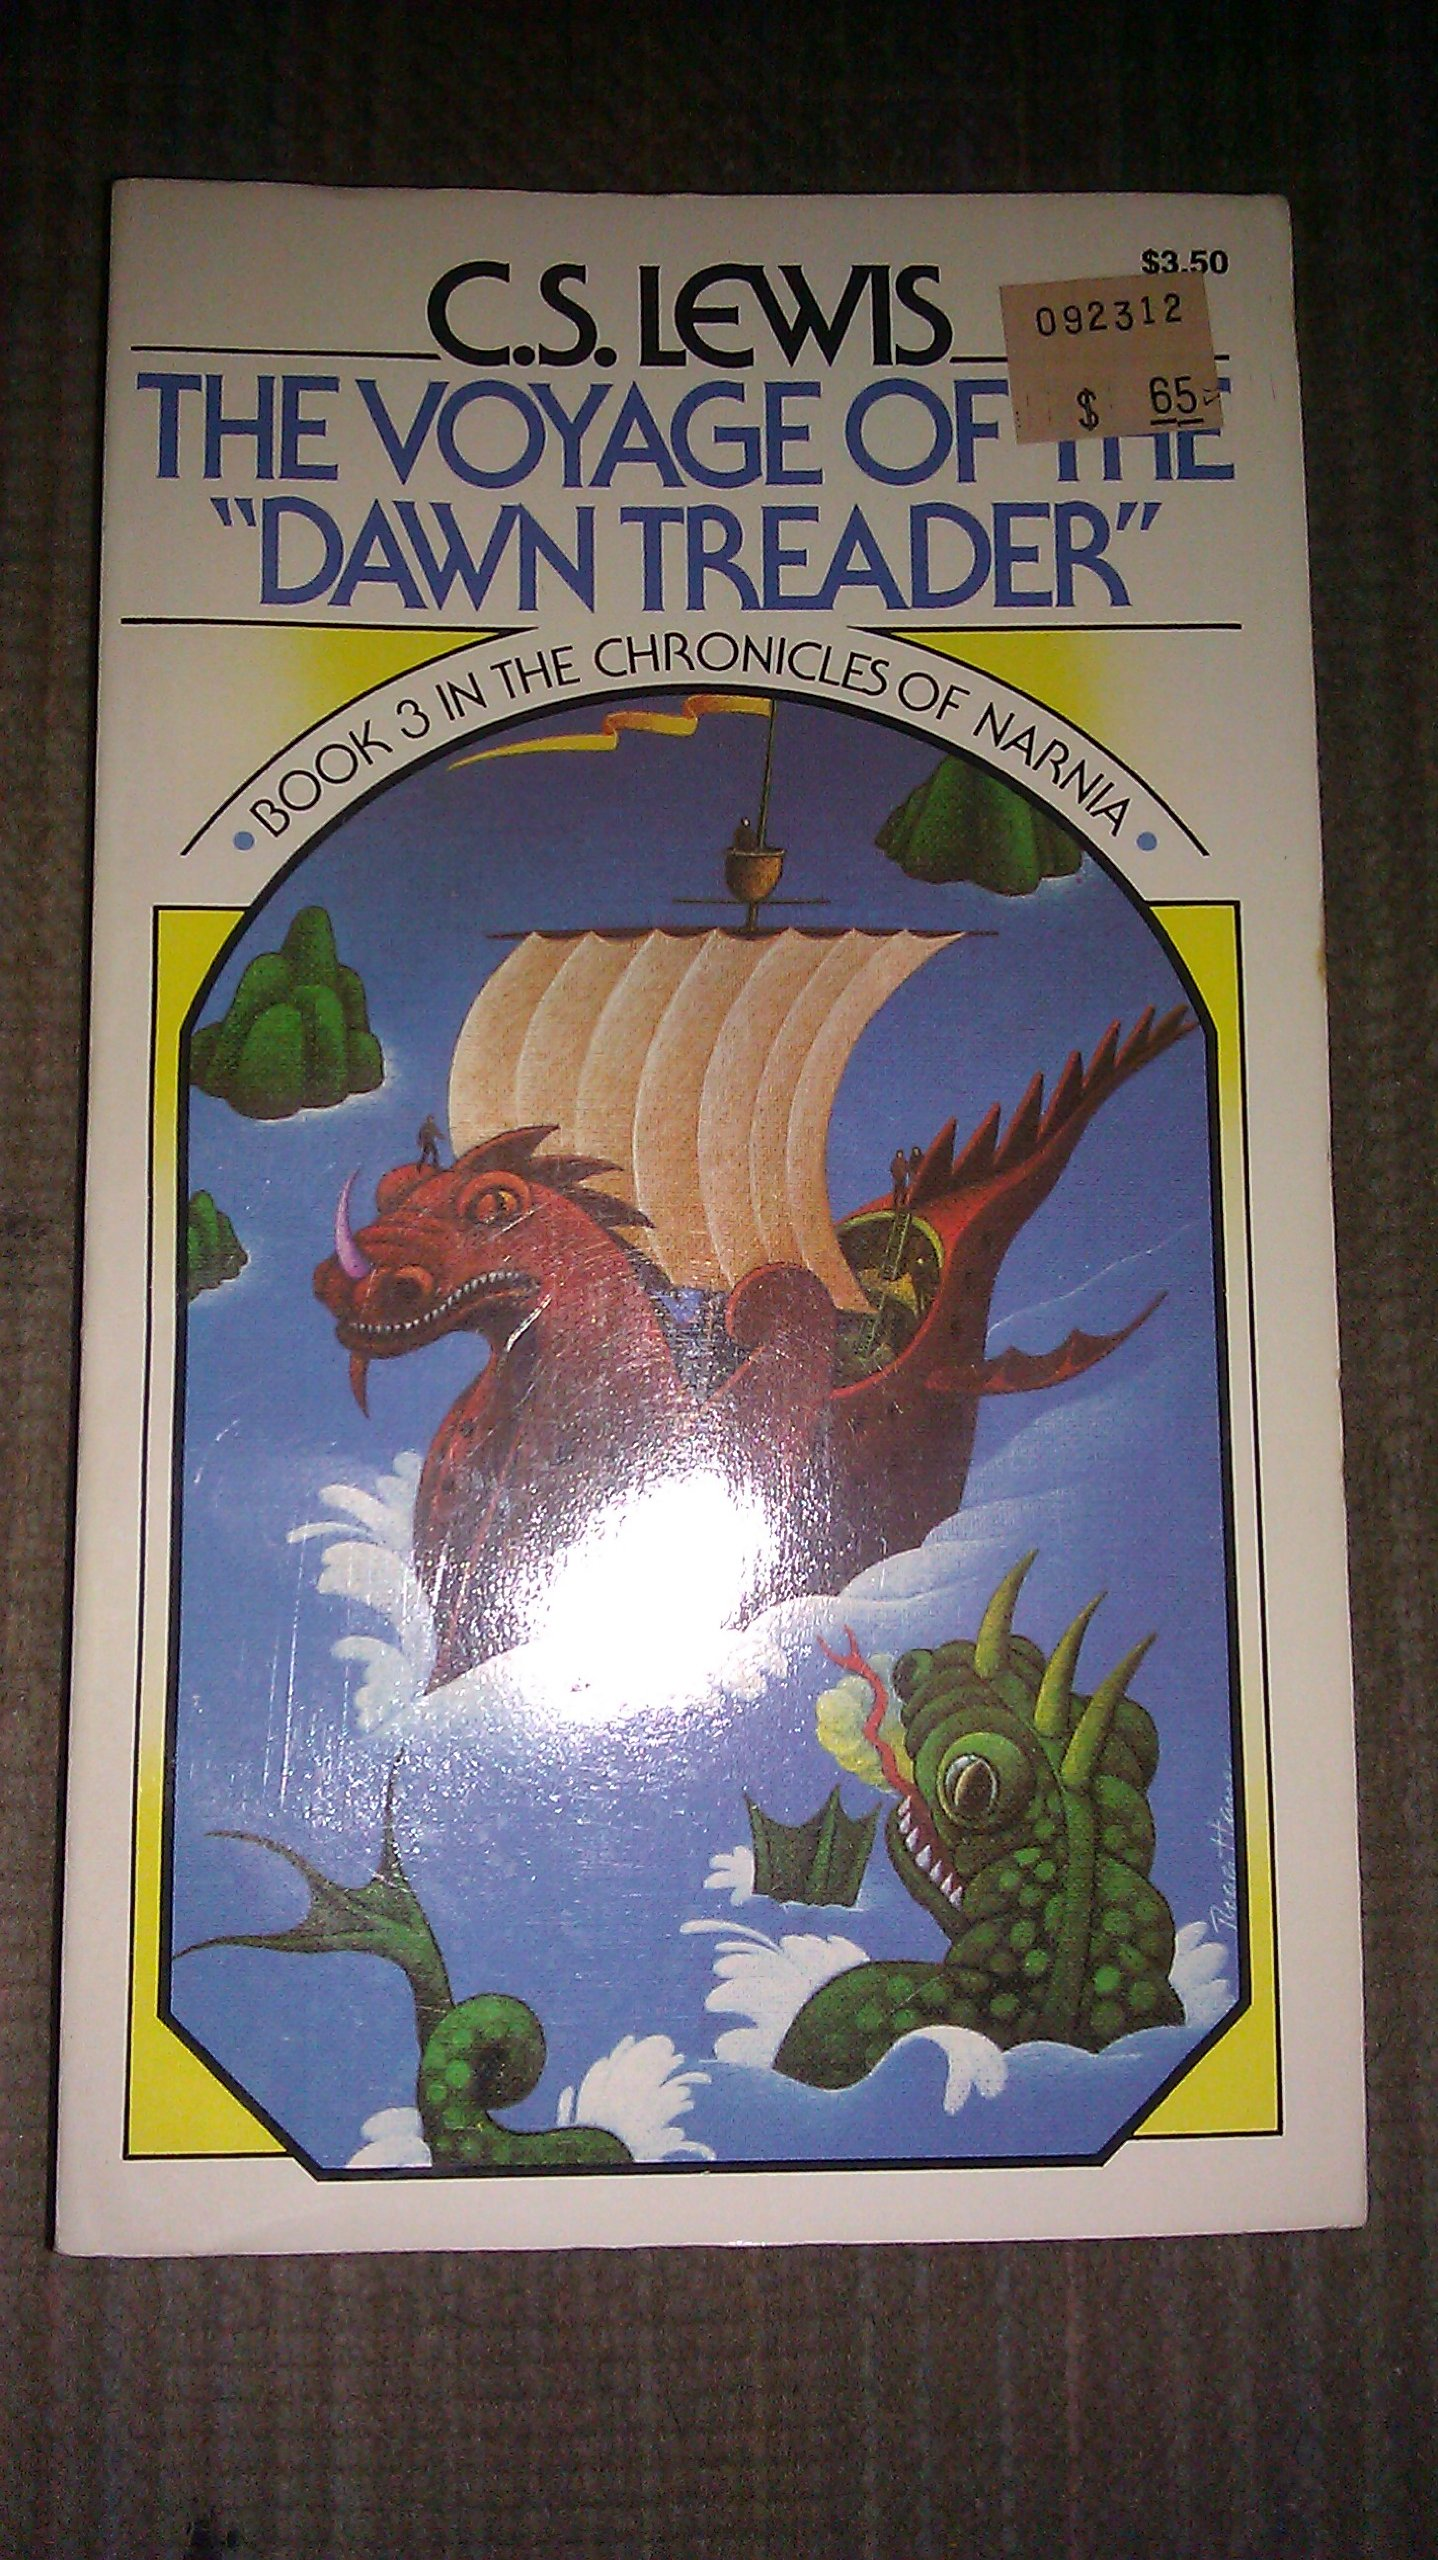 the voyage of the dawn treader chronicles of narnia book 3